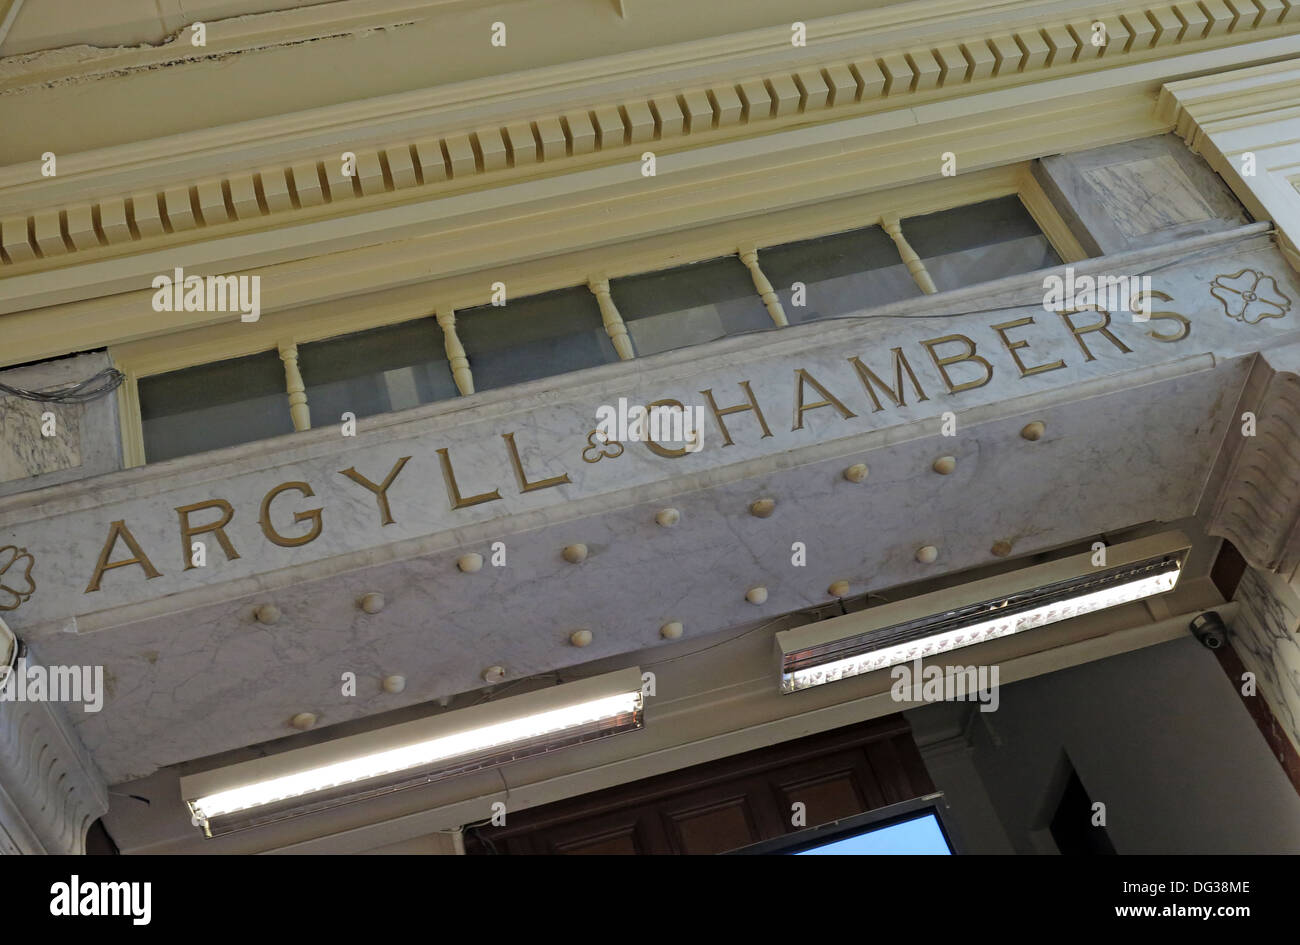 Argyll Chambers offices building & arcade Glasgow city Scotland UK - Stock Image